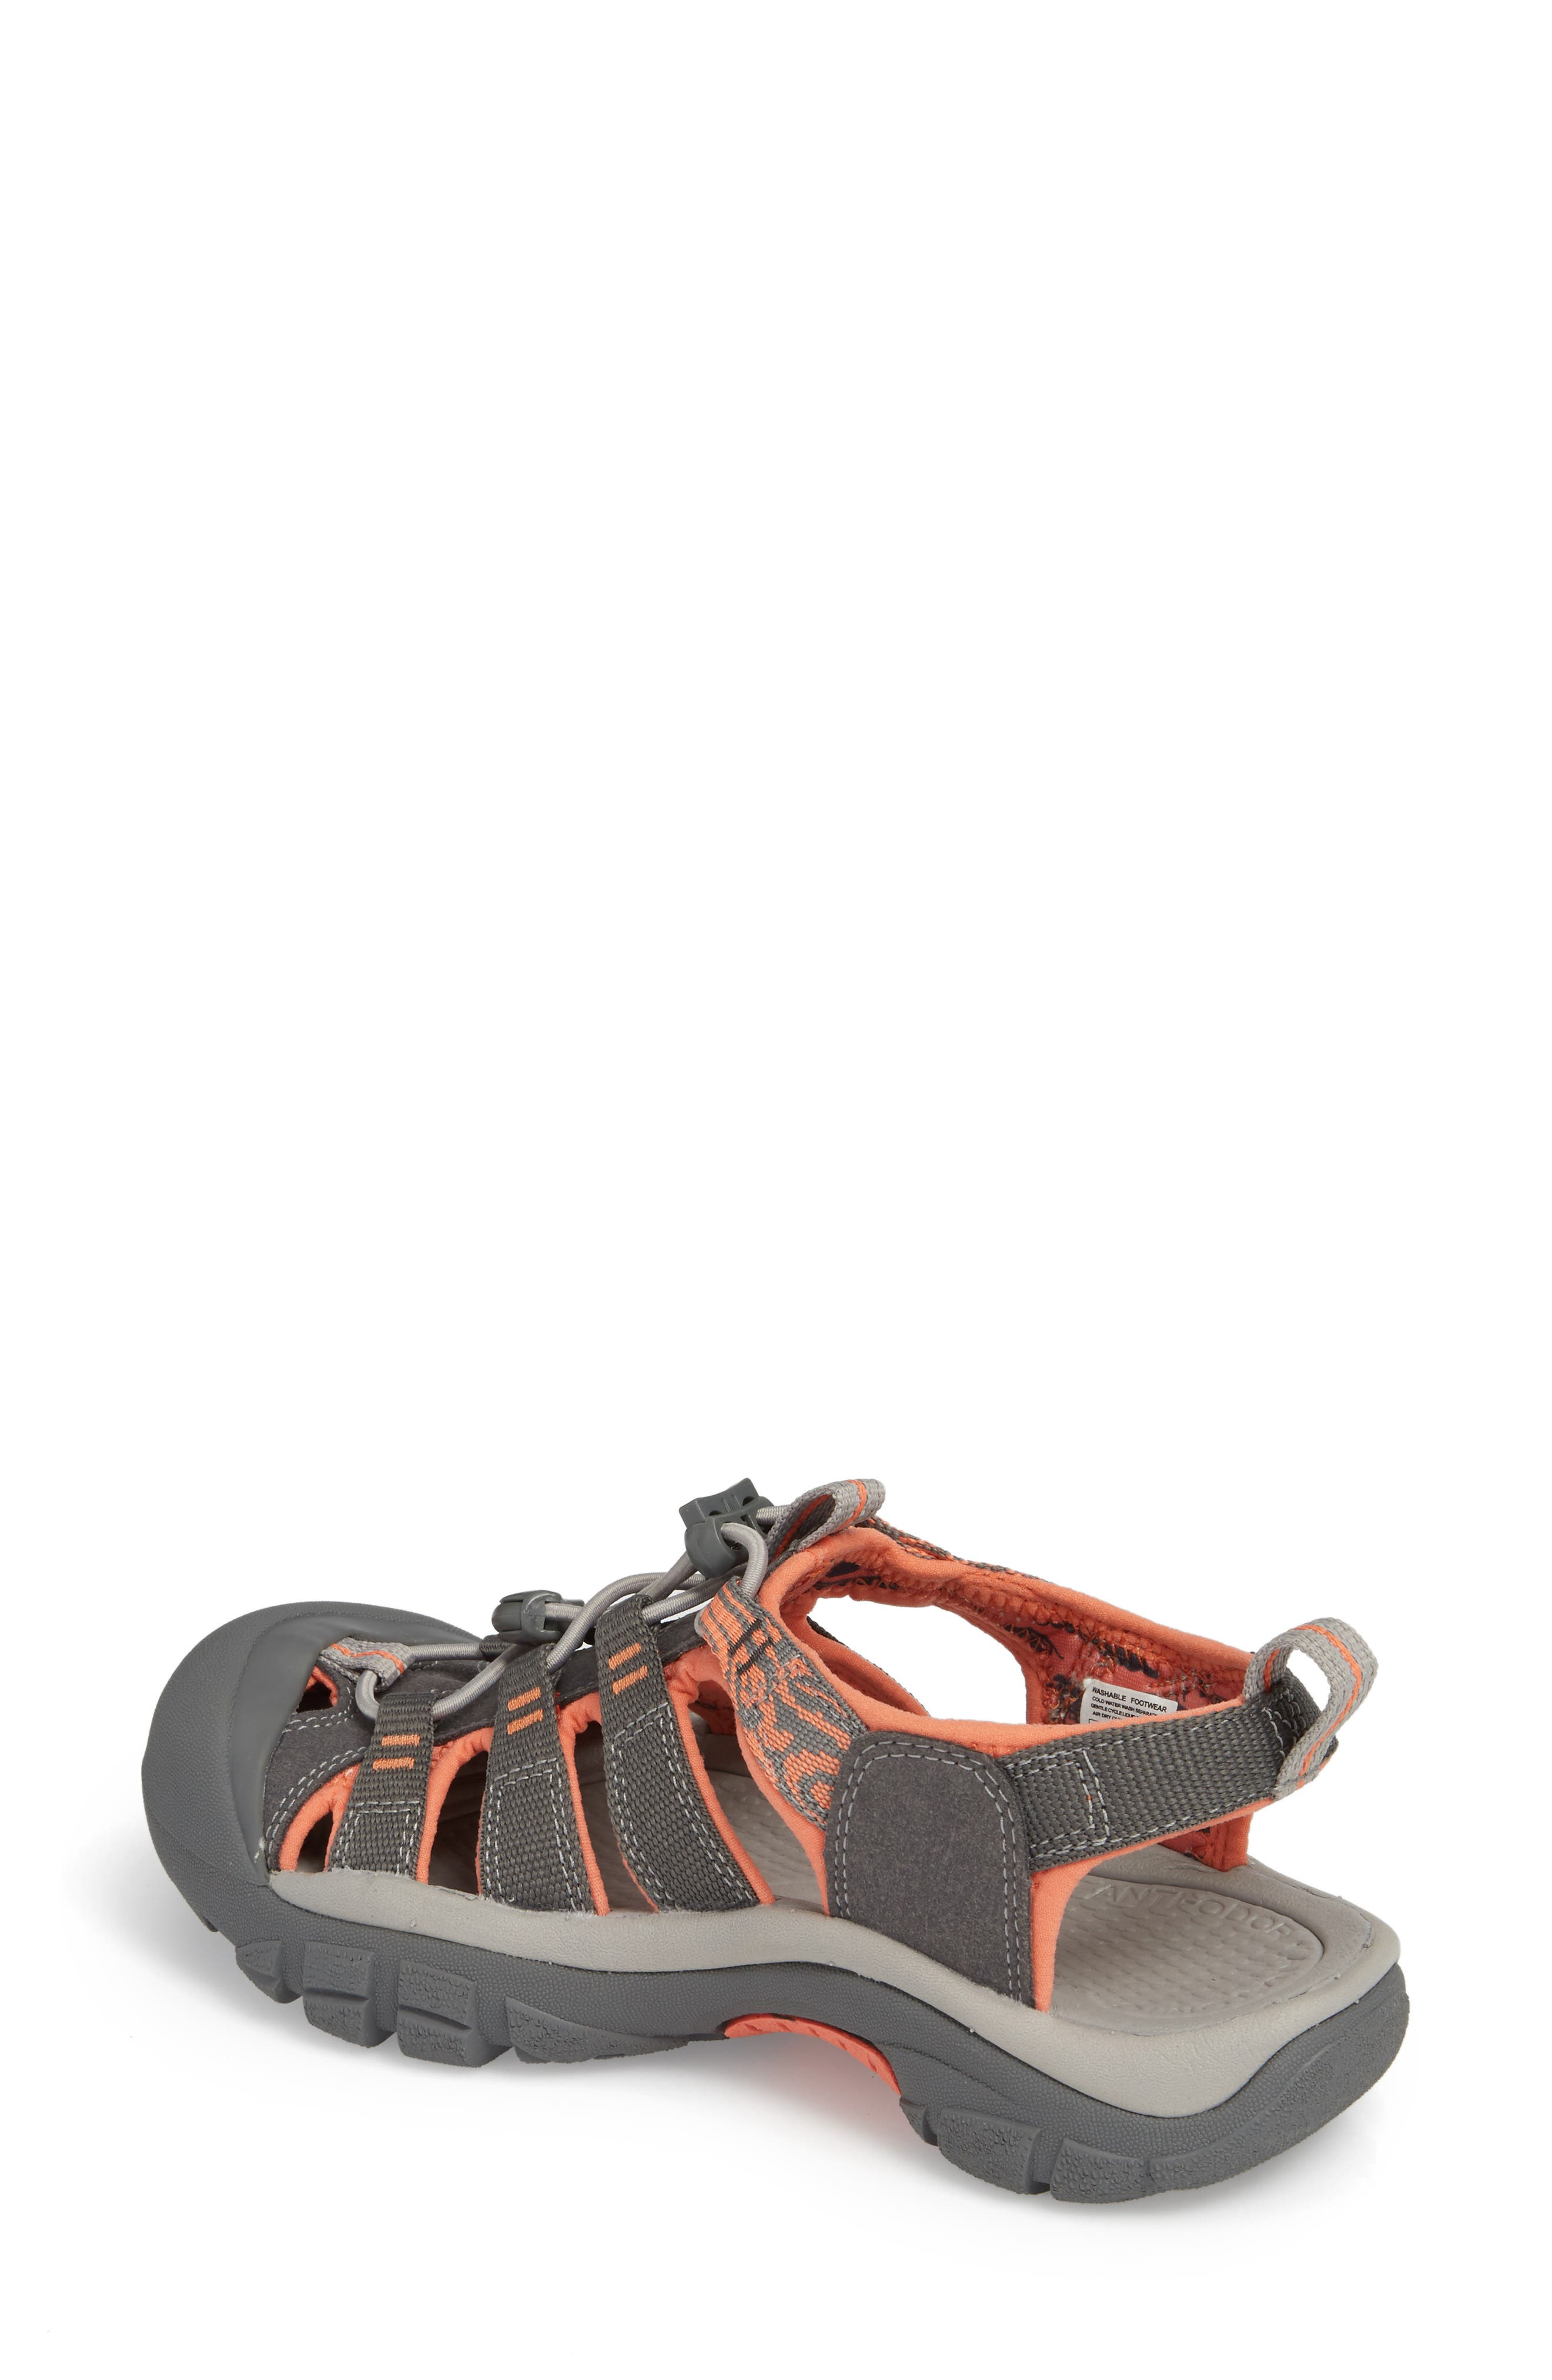 Newport Hydro Sandal,                             Alternate thumbnail 2, color,                             MAGNET/ CORAL